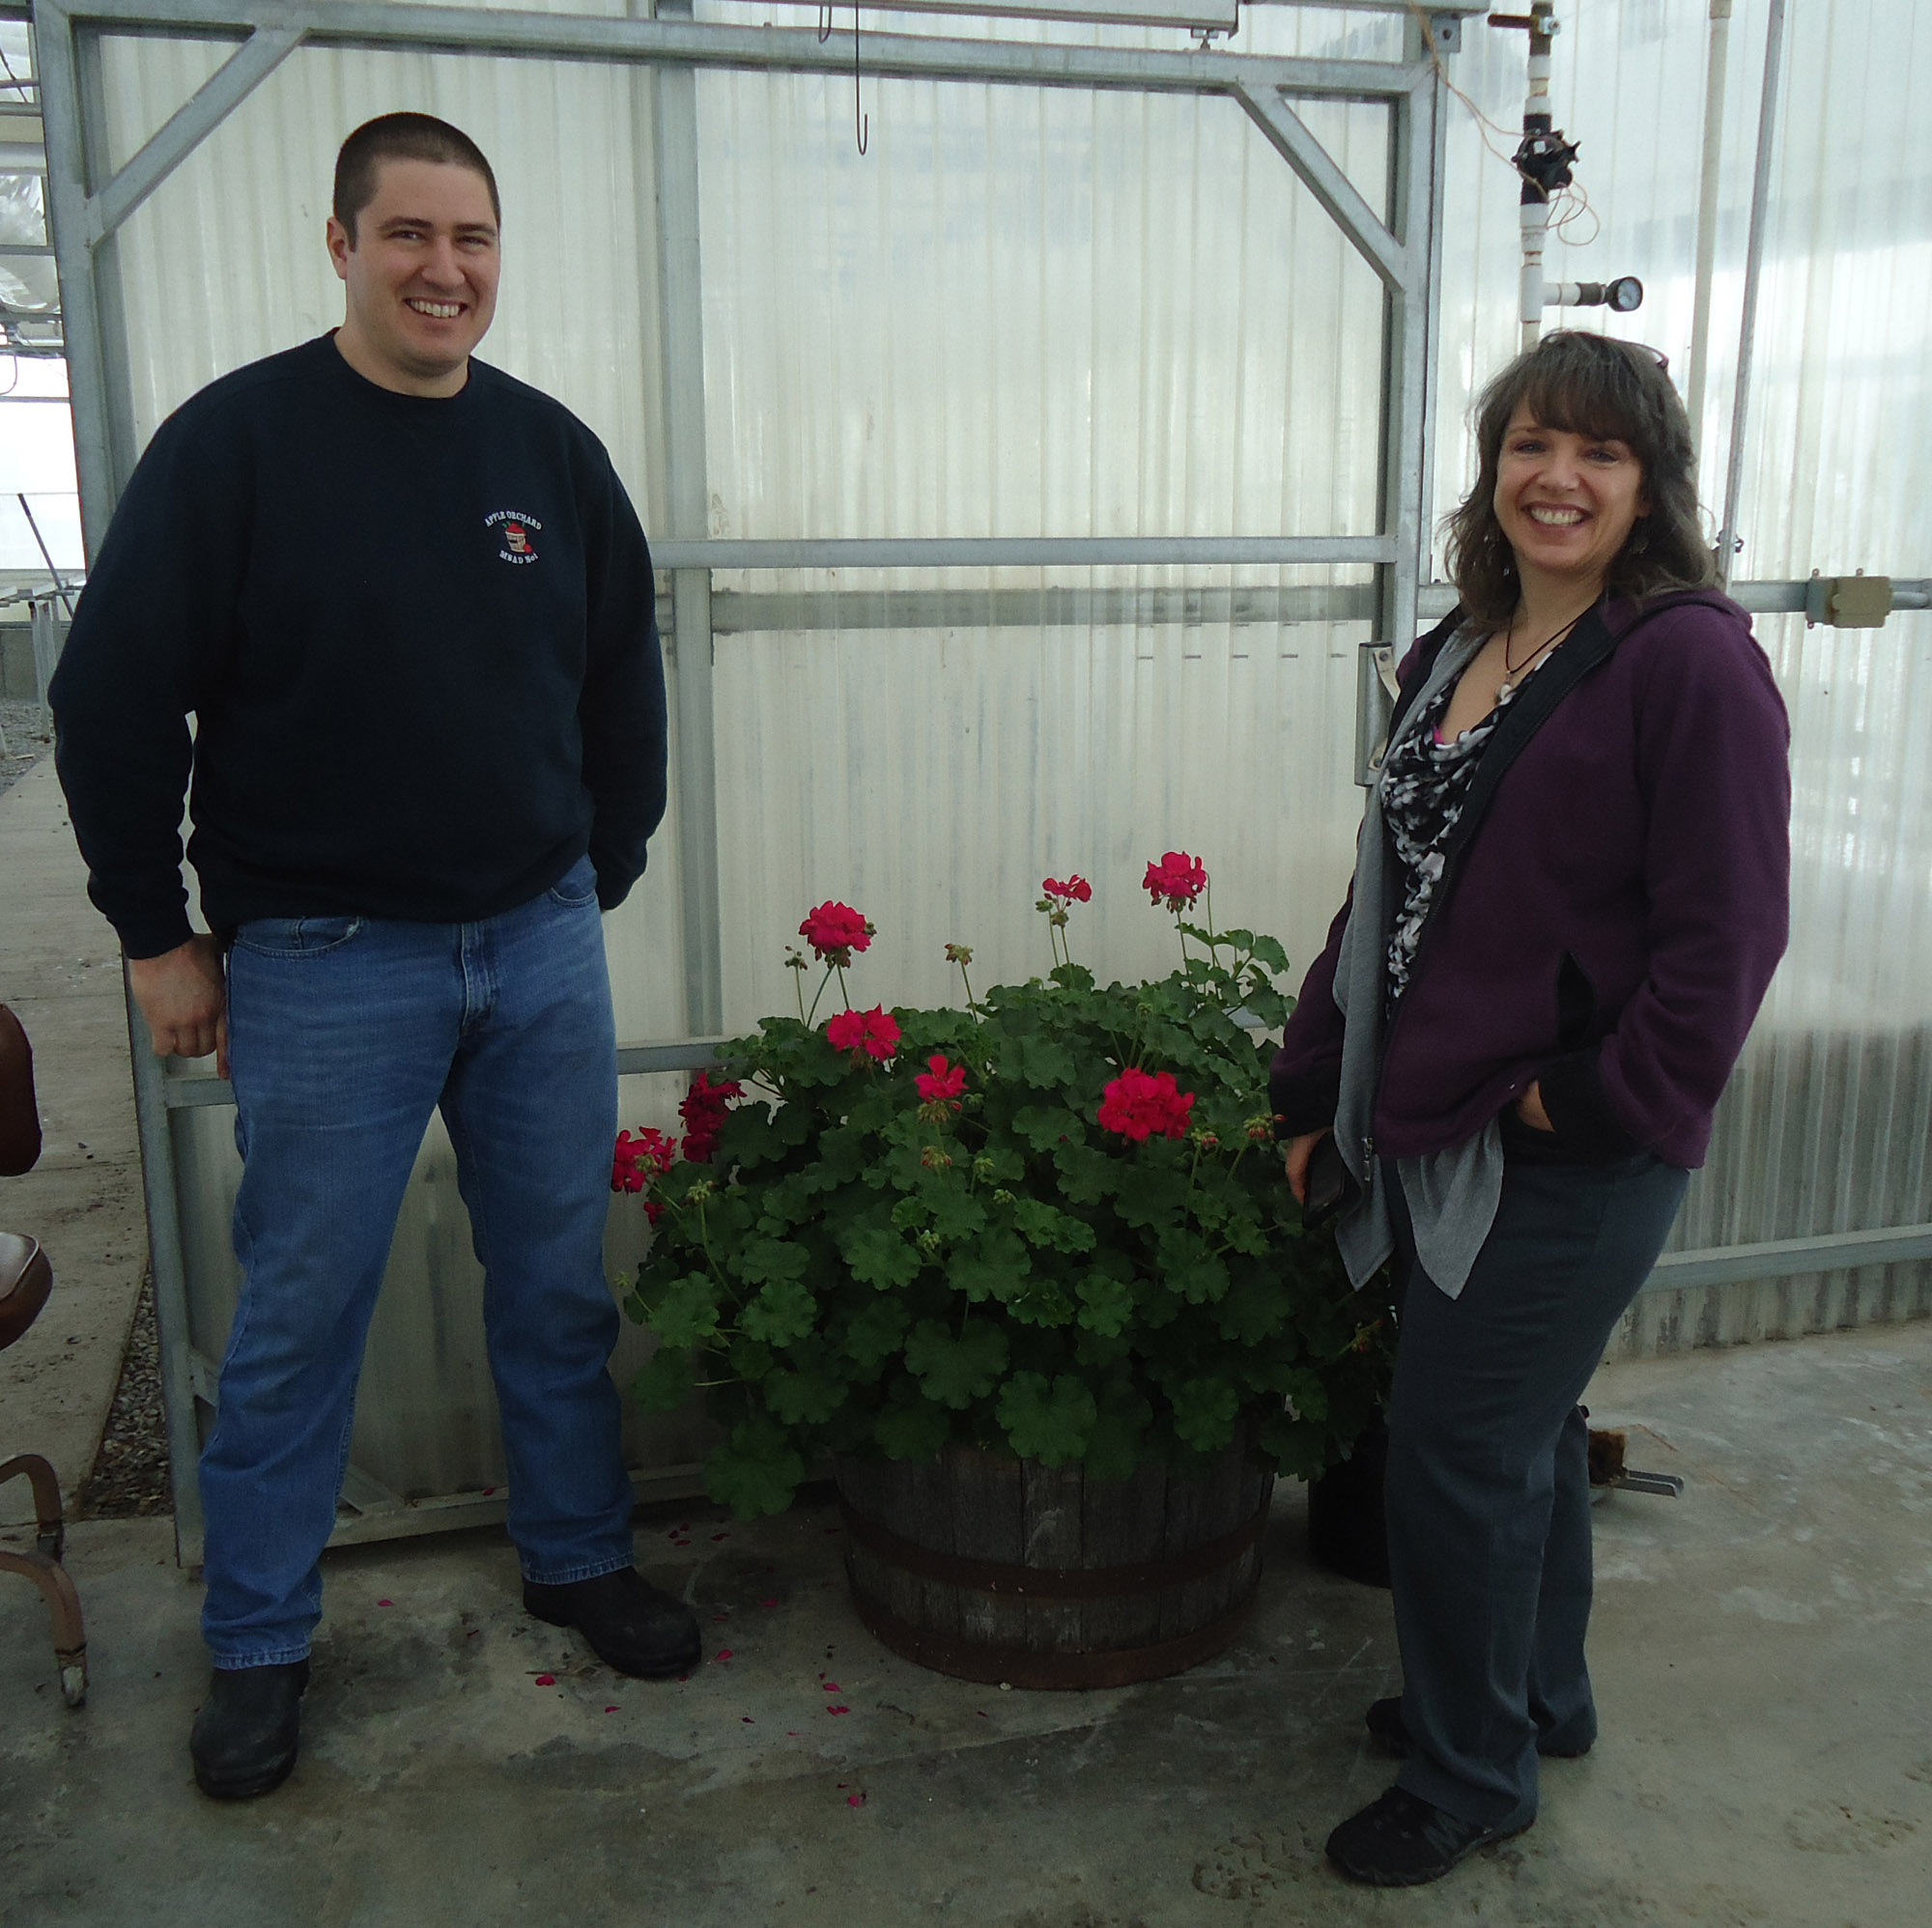 John Hoffses and Renee Page stand inside a greenhouse that John manages for the school farm at MSAD #1 in Presque Isle, Maine.